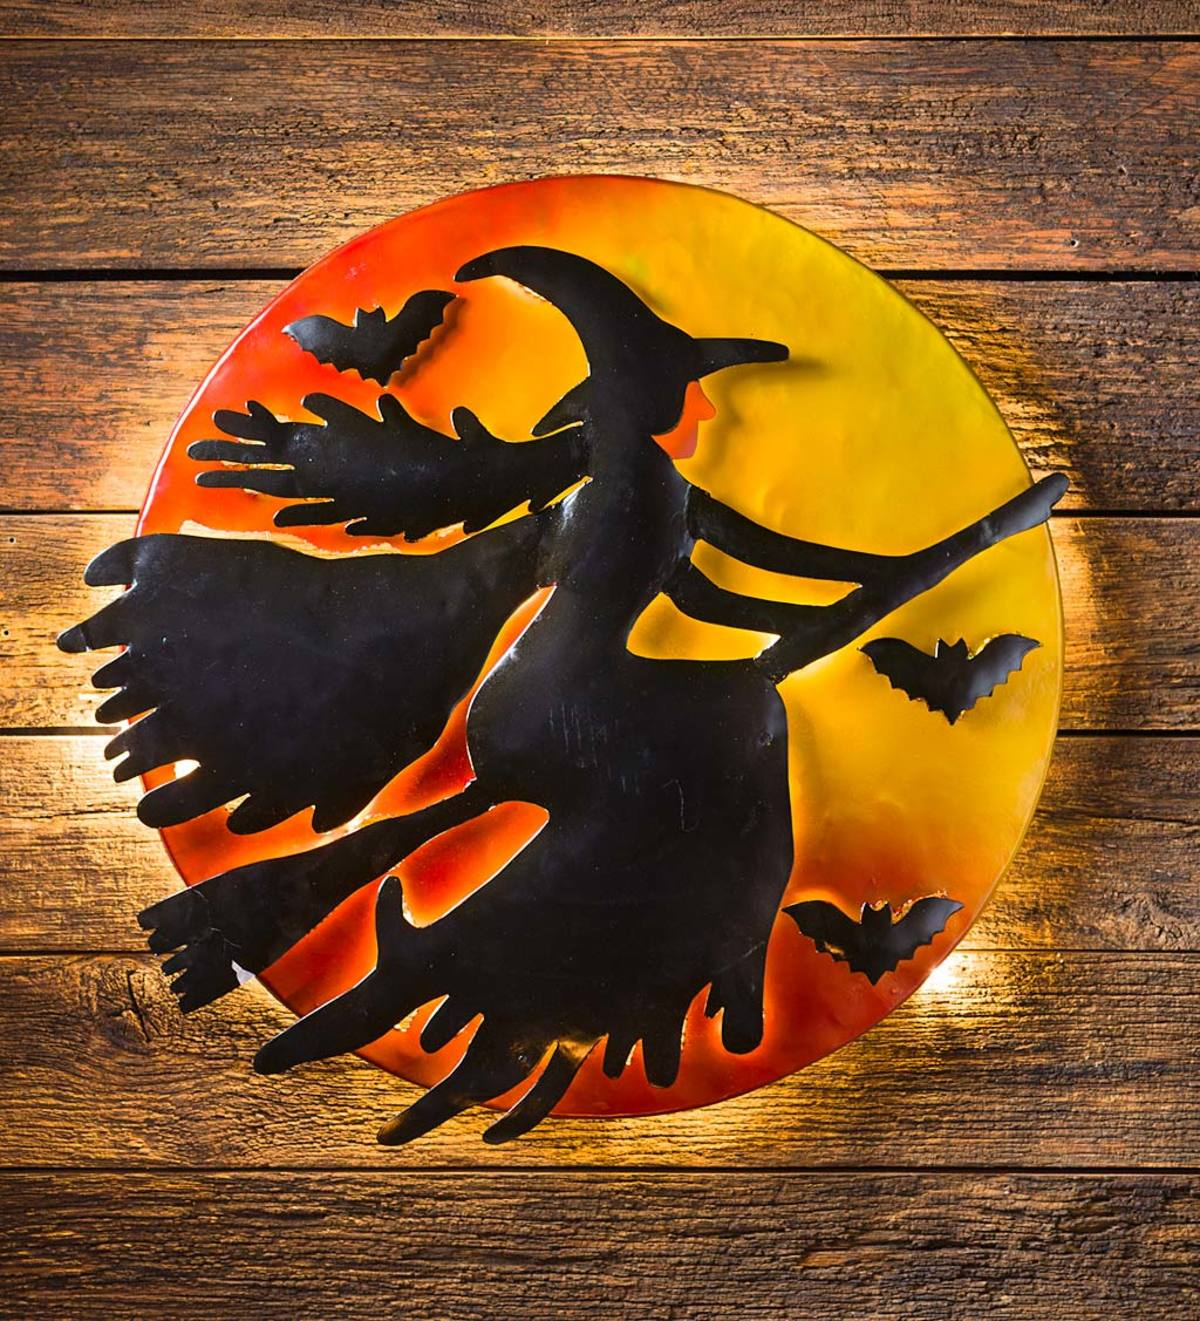 3D Lighted Flying Witch Recycled Oil Drum Lid Wall Art